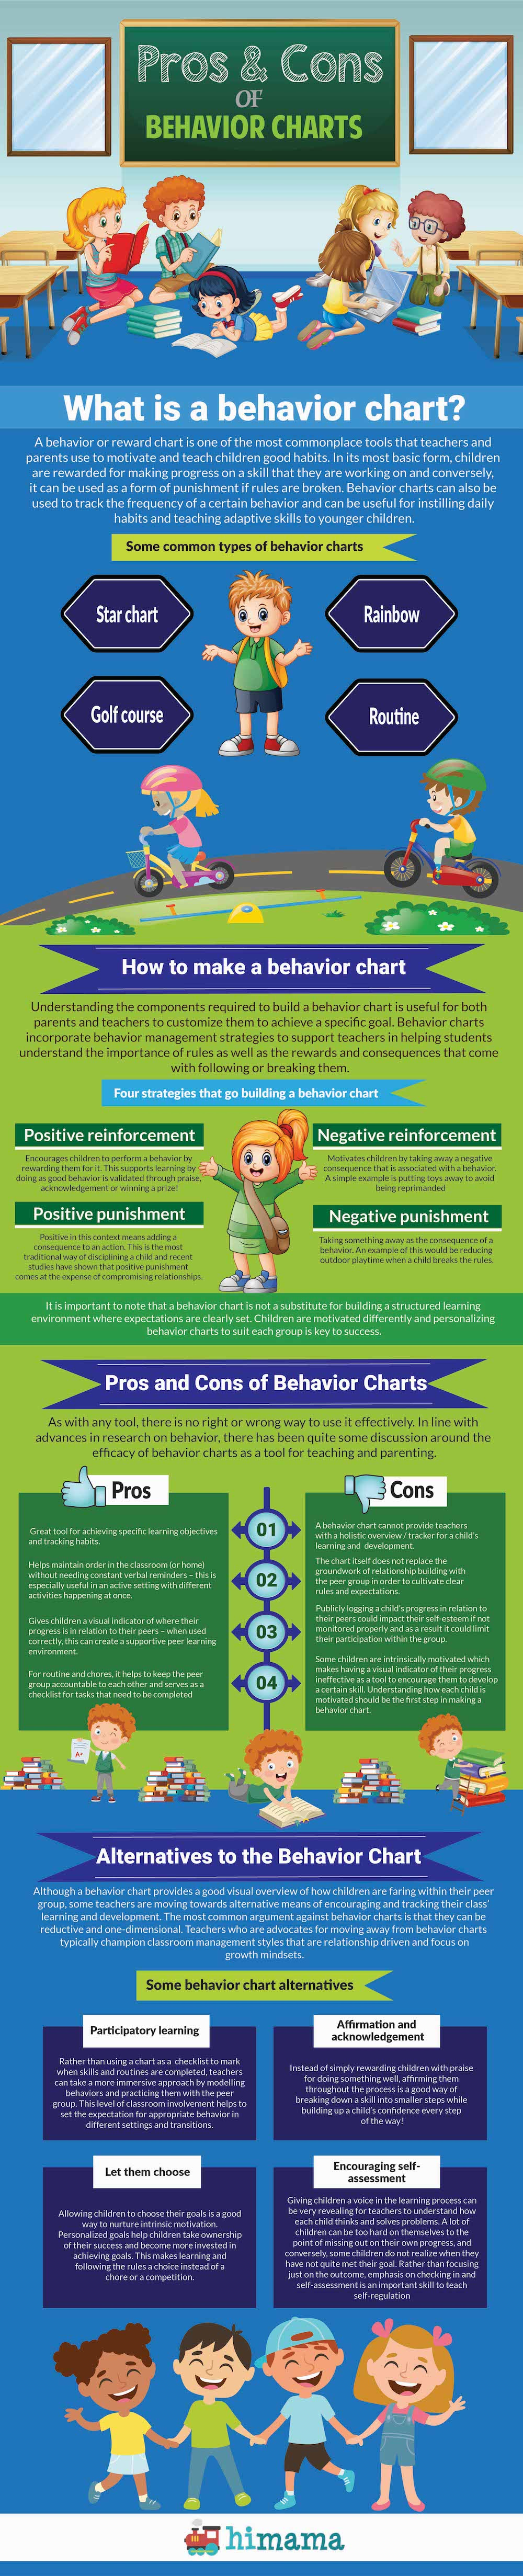 pros and cons of behavior charts infographic